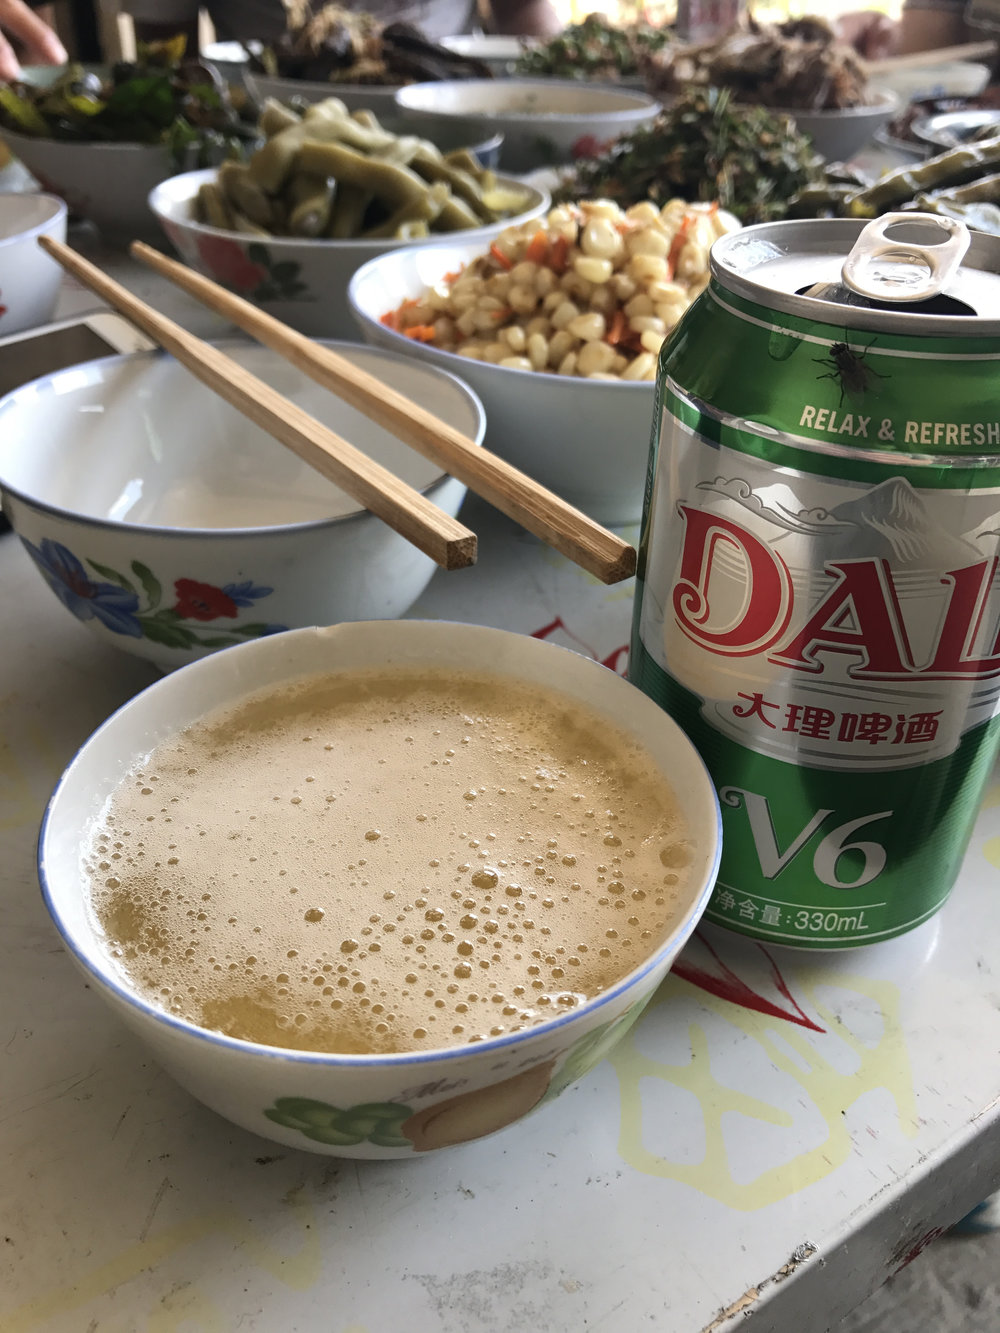 Bowls of beer in Dayangjie.